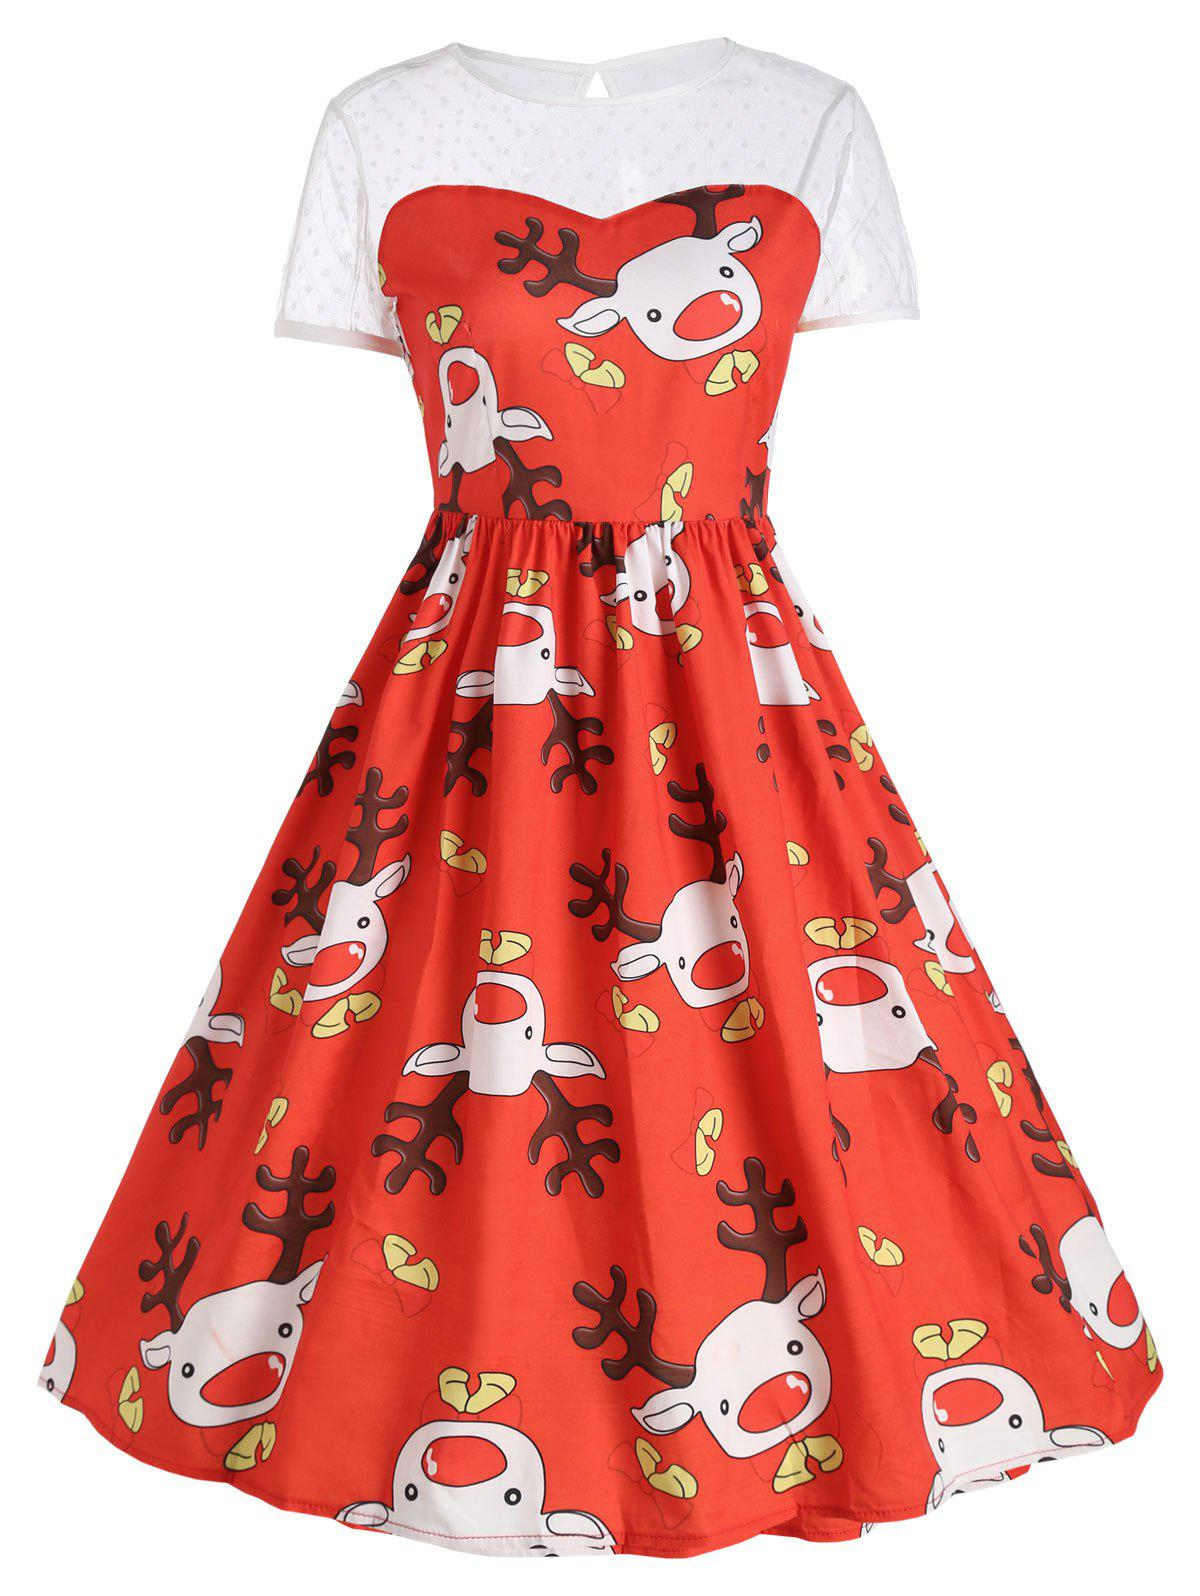 Mesh Insert Cute Reindeer Christmas Party DressWOMEN<br><br>Size: XL; Color: RED; Style: Vintage; Material: Polyester; Silhouette: Ball Gown; Dresses Length: Mid-Calf; Neckline: Round Collar; Sleeve Length: Short Sleeves; Embellishment: Hole; Pattern Type: Animal,Print; With Belt: No; Season: Fall,Winter; Weight: 0.2400kg; Package Contents: 1 x Dress;